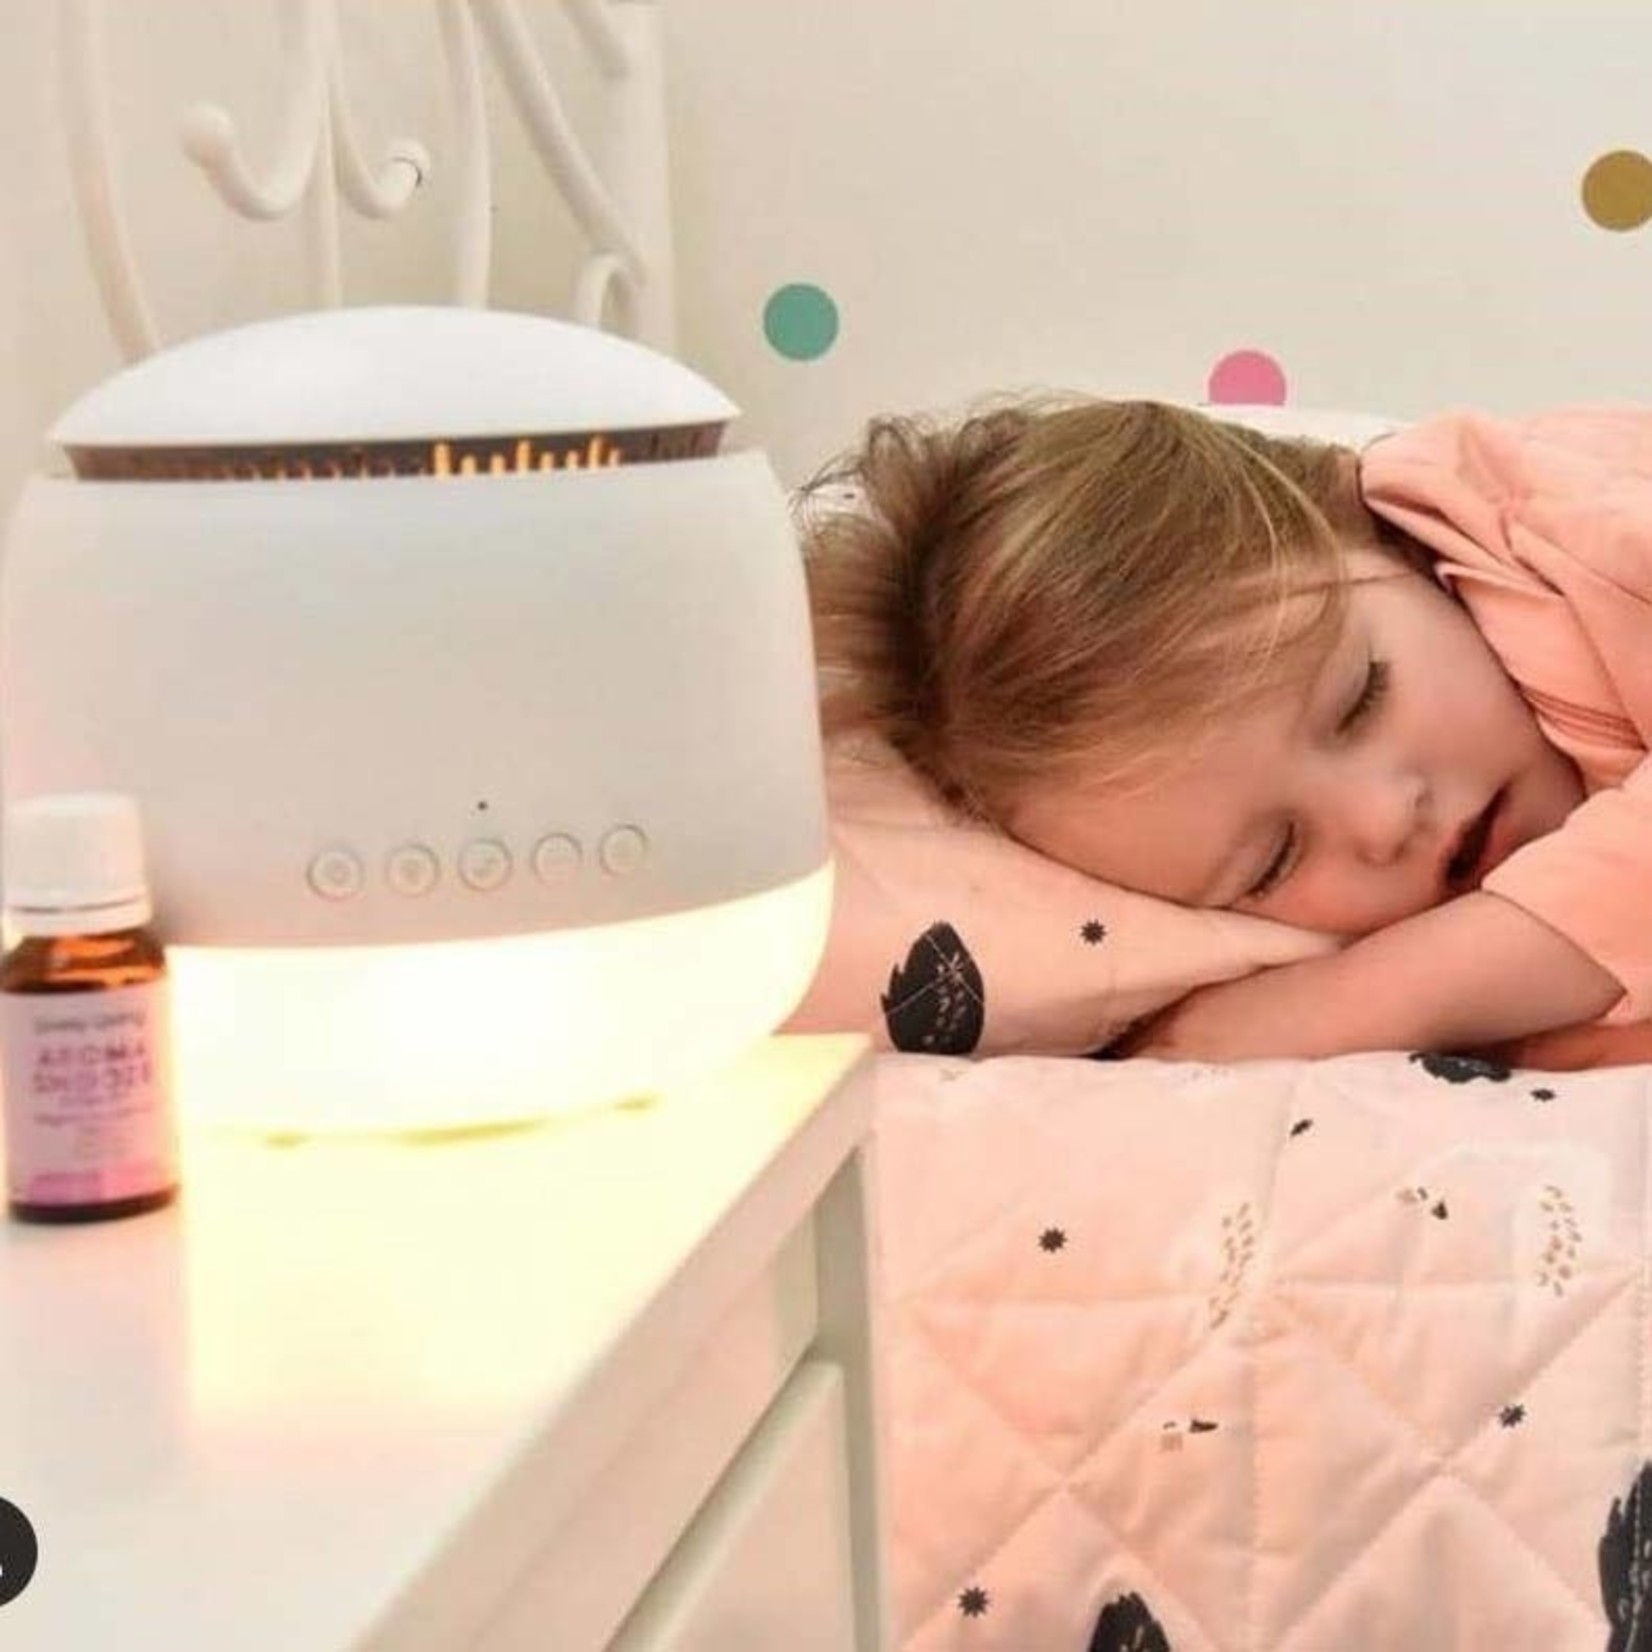 Lively Living Aroma-Snooze Diffuser + Organic Snooze Essential Oil